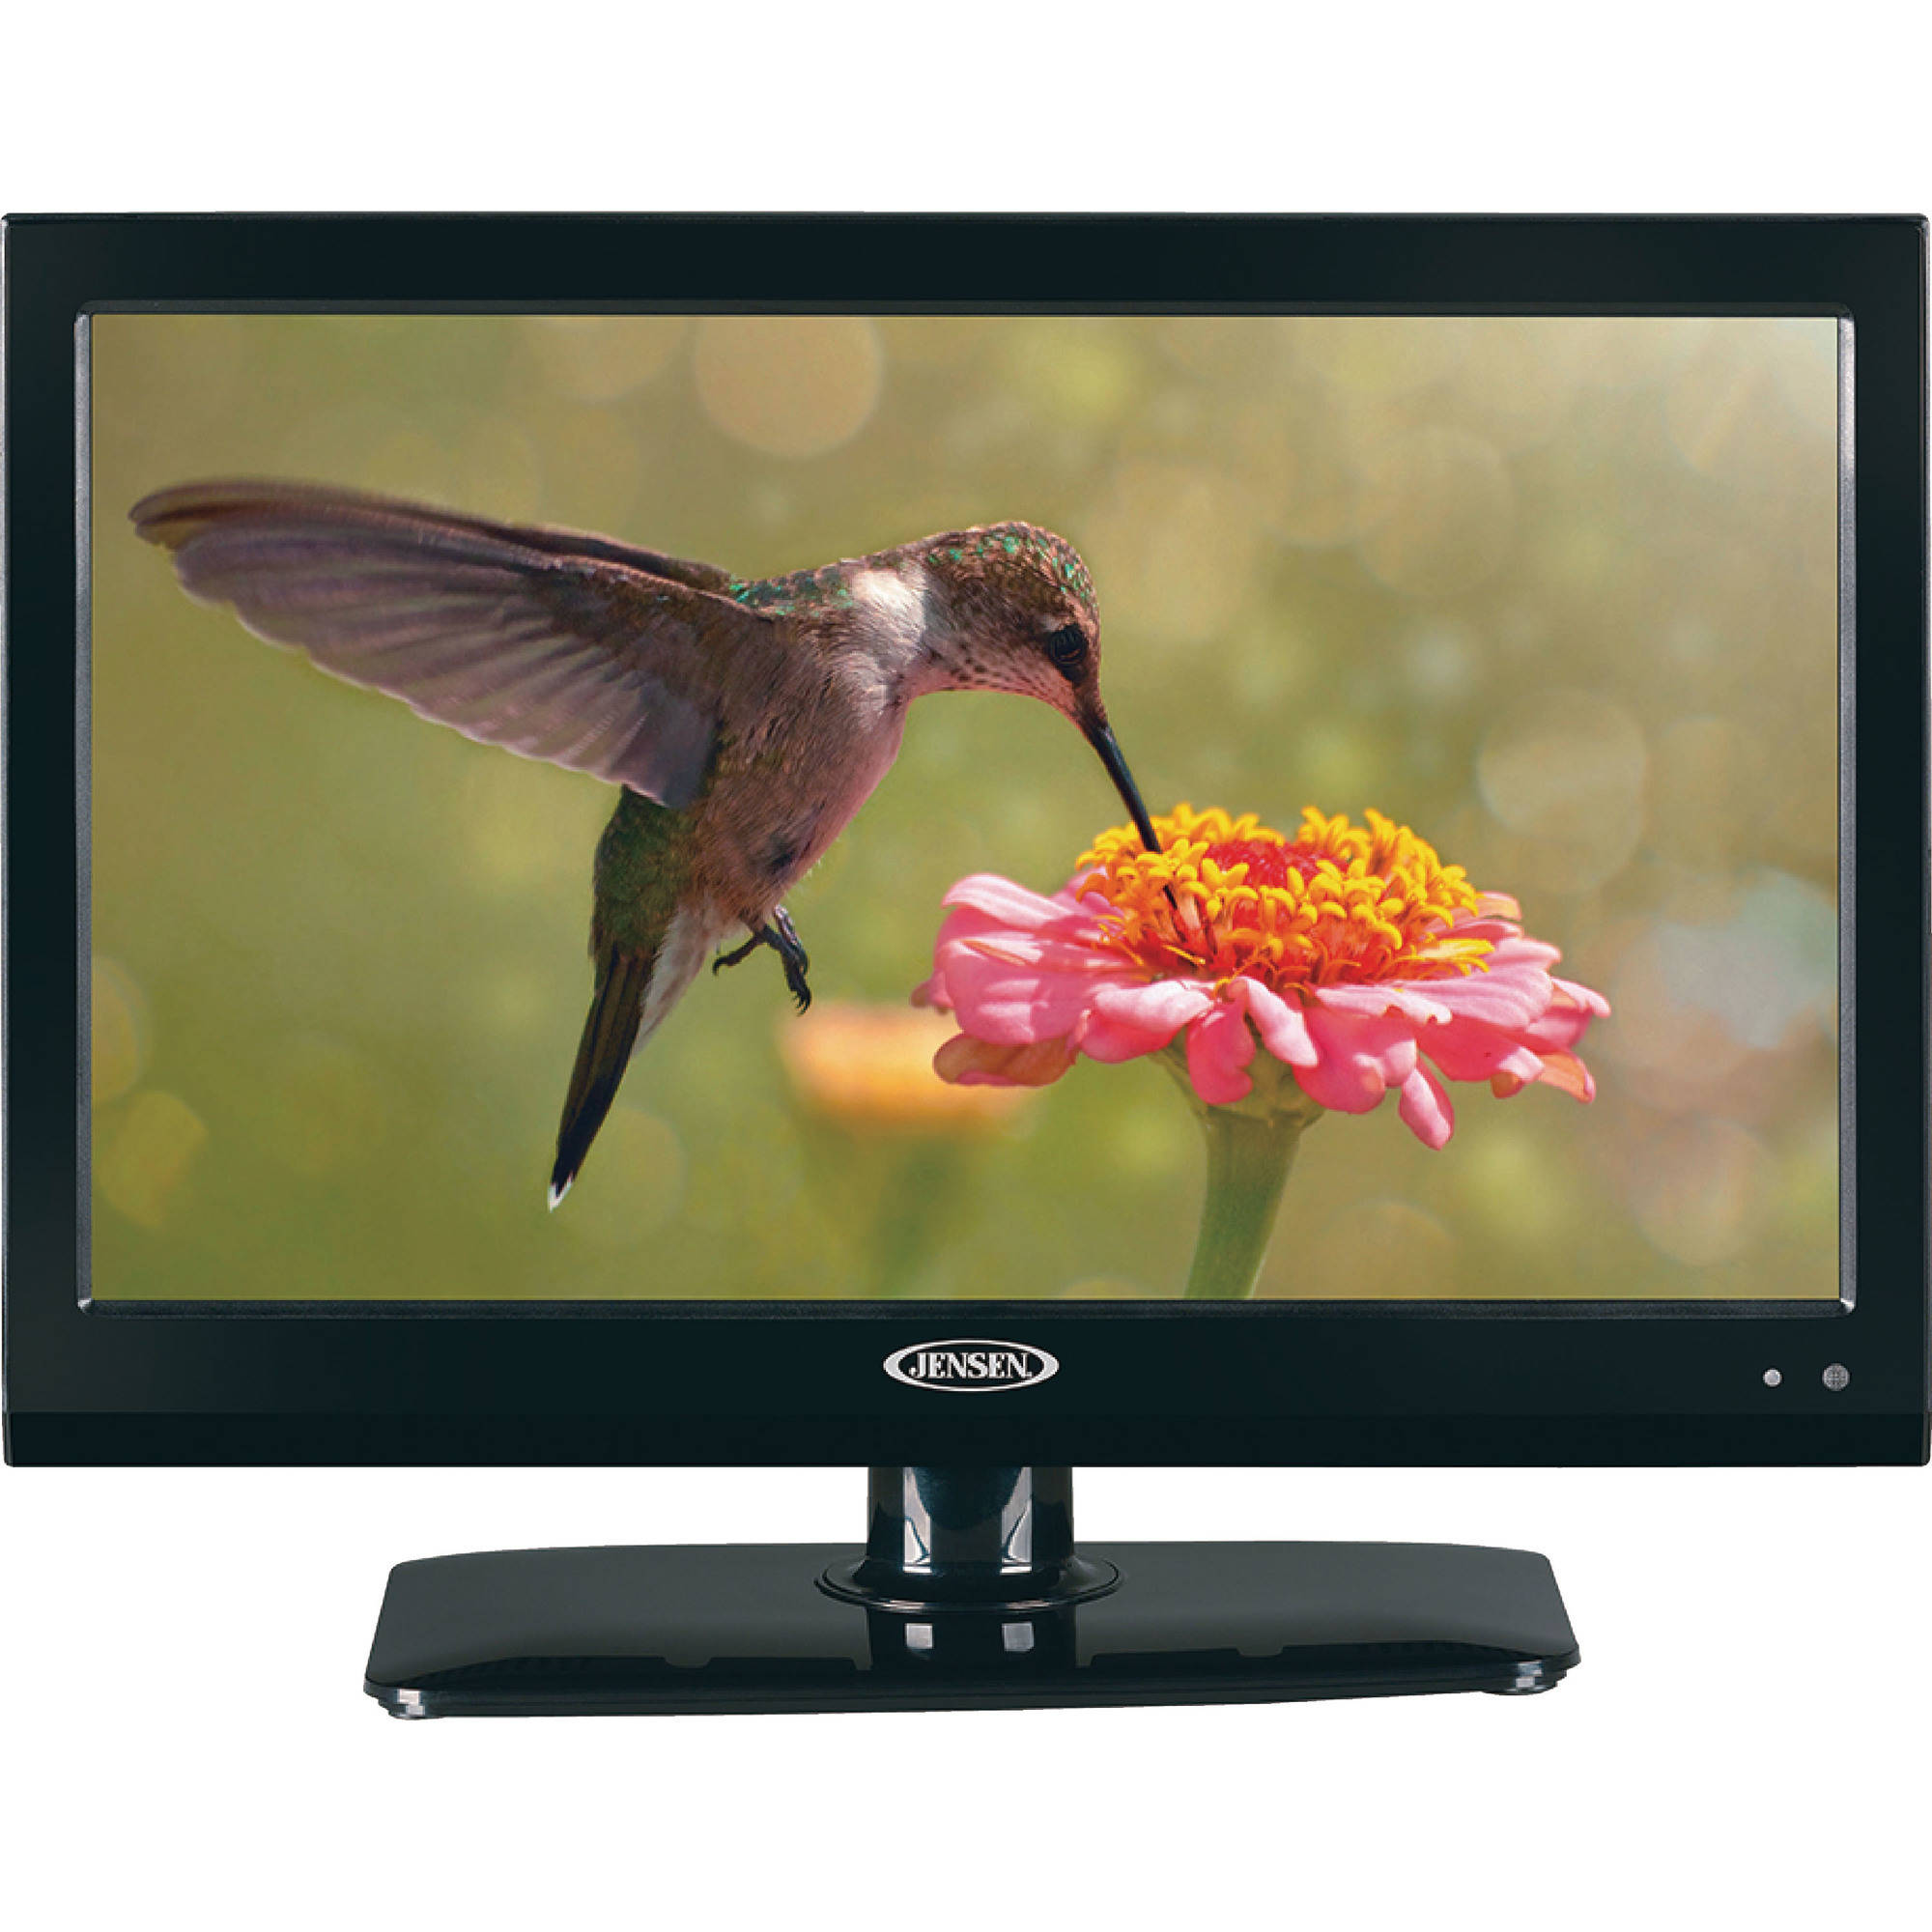 JENSEN JE1914DVDC 19 LCD TV with Build-In DVD Player, High Performance